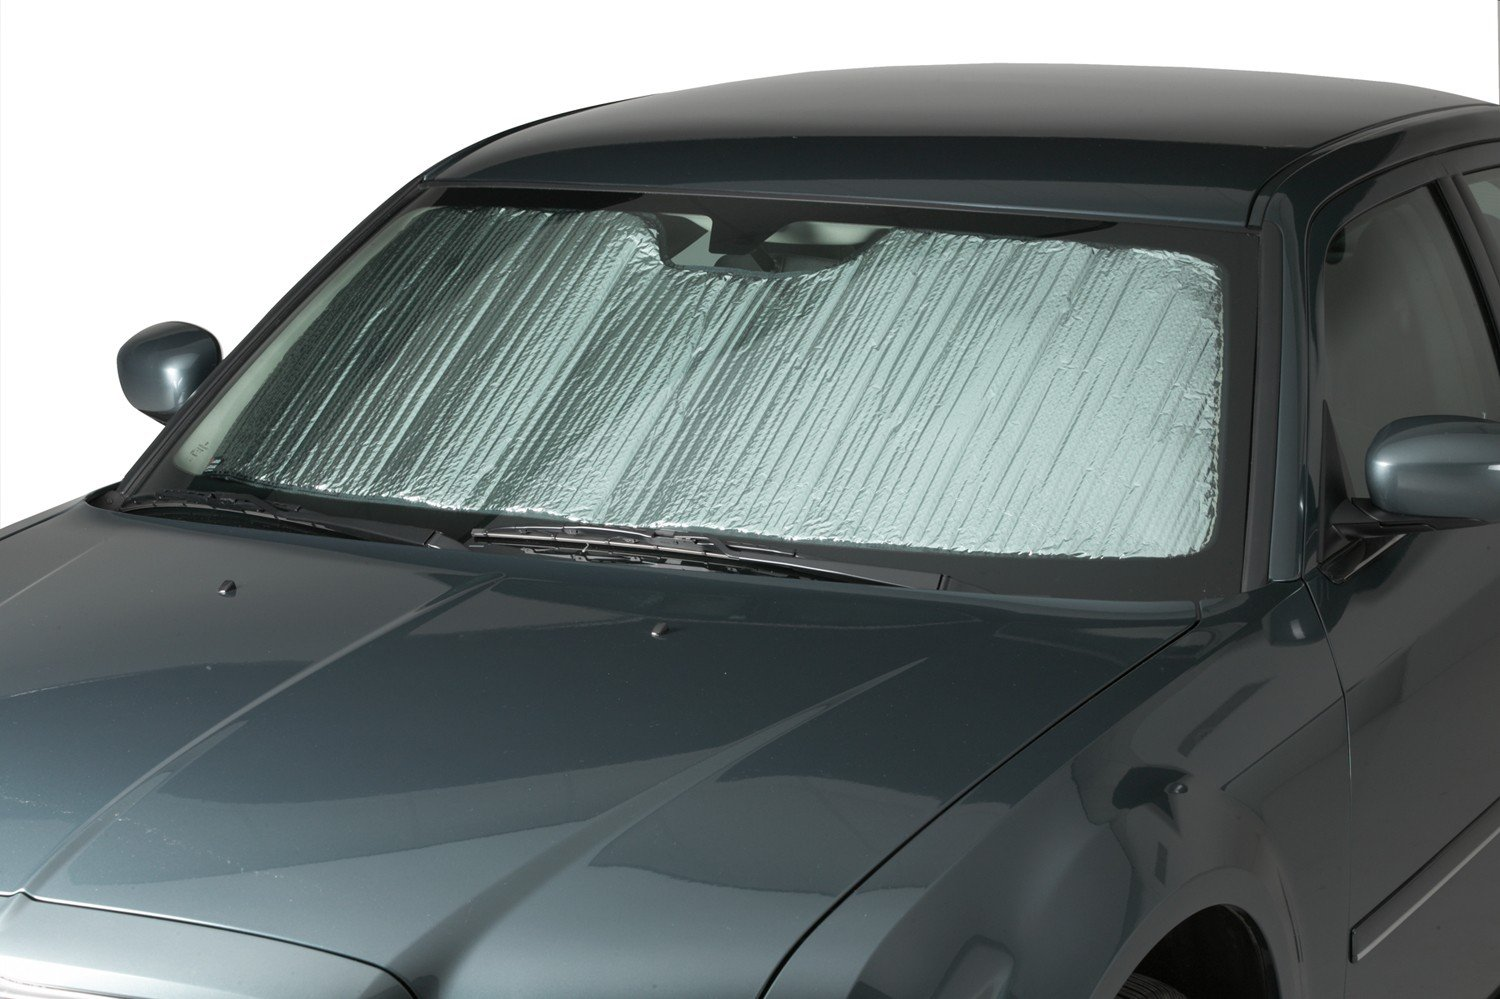 Covercraft Flex Shade Custom Fit Windshield Shade for Select Ford Edge Models UR11204 Silver Radiant Barrier Material